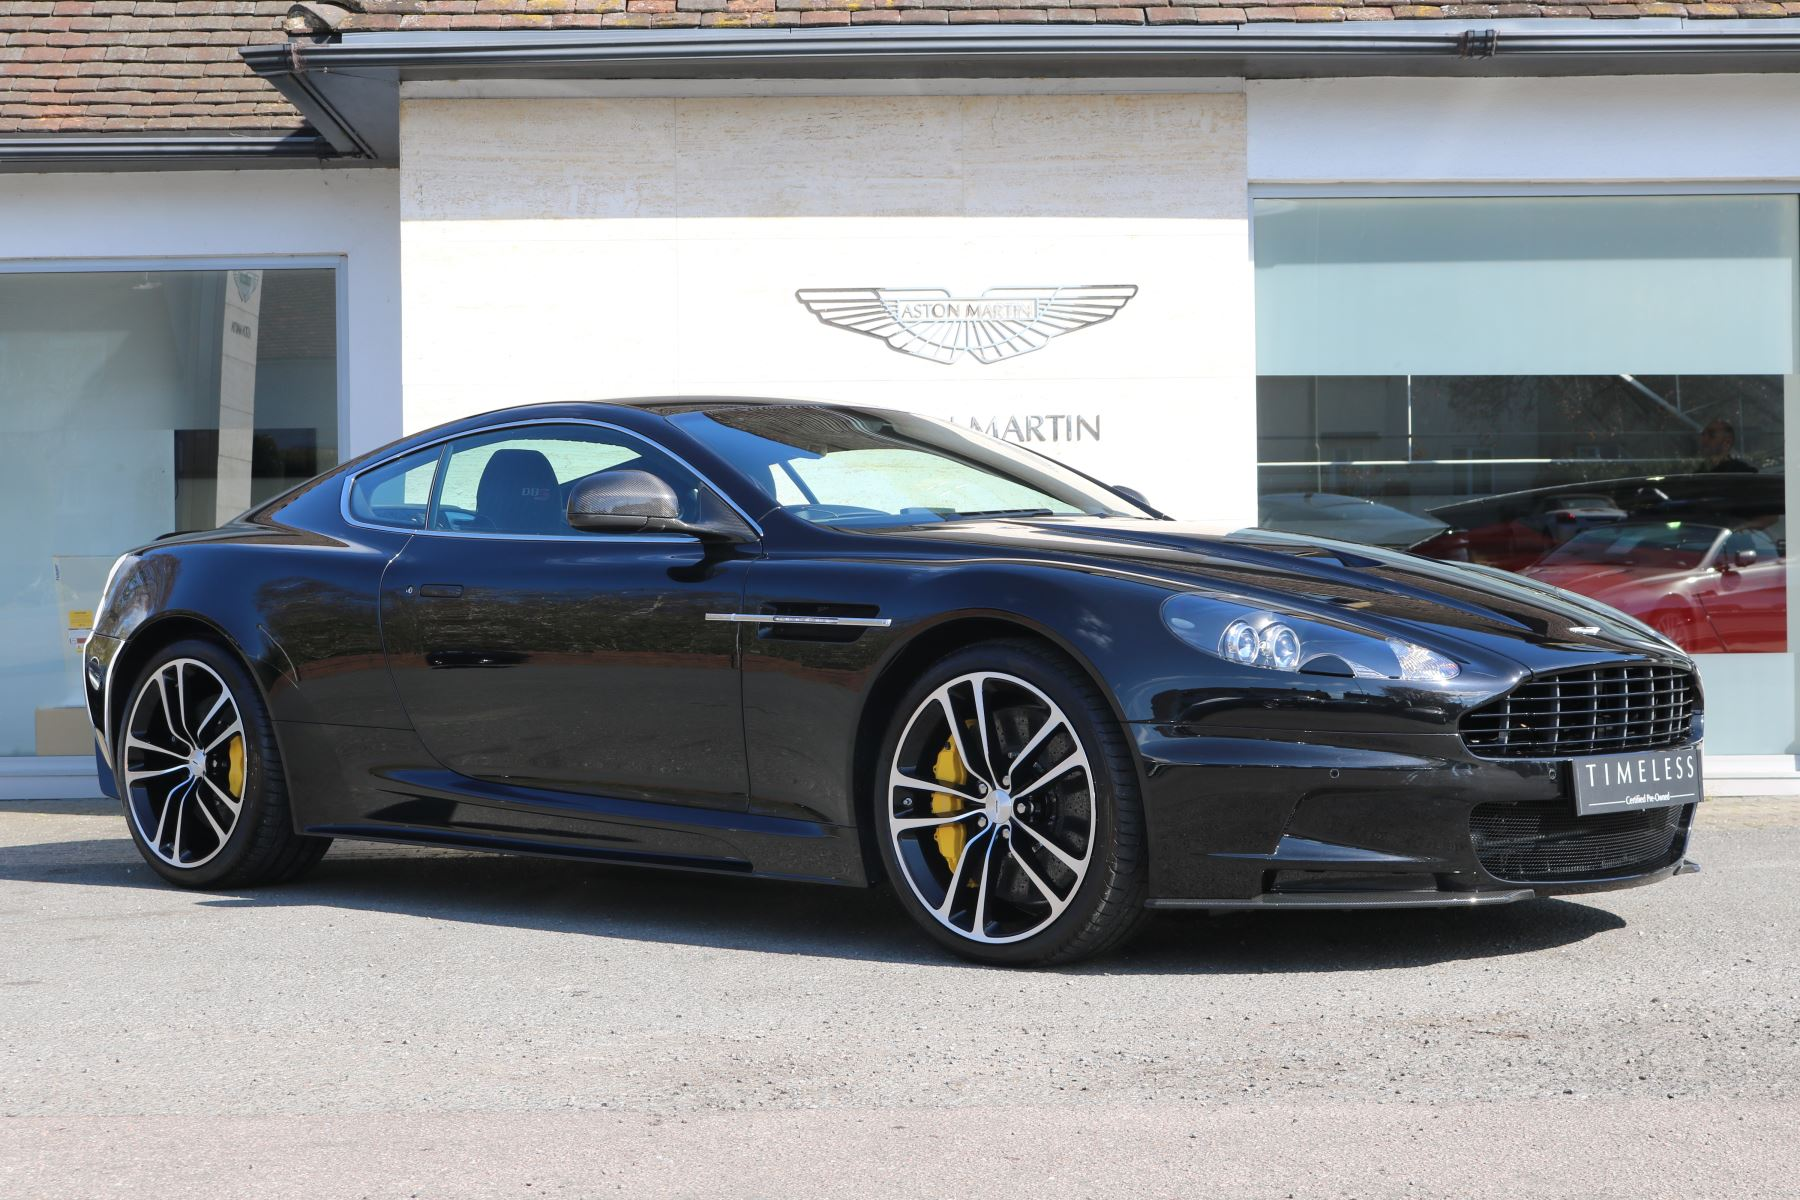 Aston Martin DBS Ultimate Edition V12 2dr Touchtronic 5.9 Automatic Coupe (2012) image